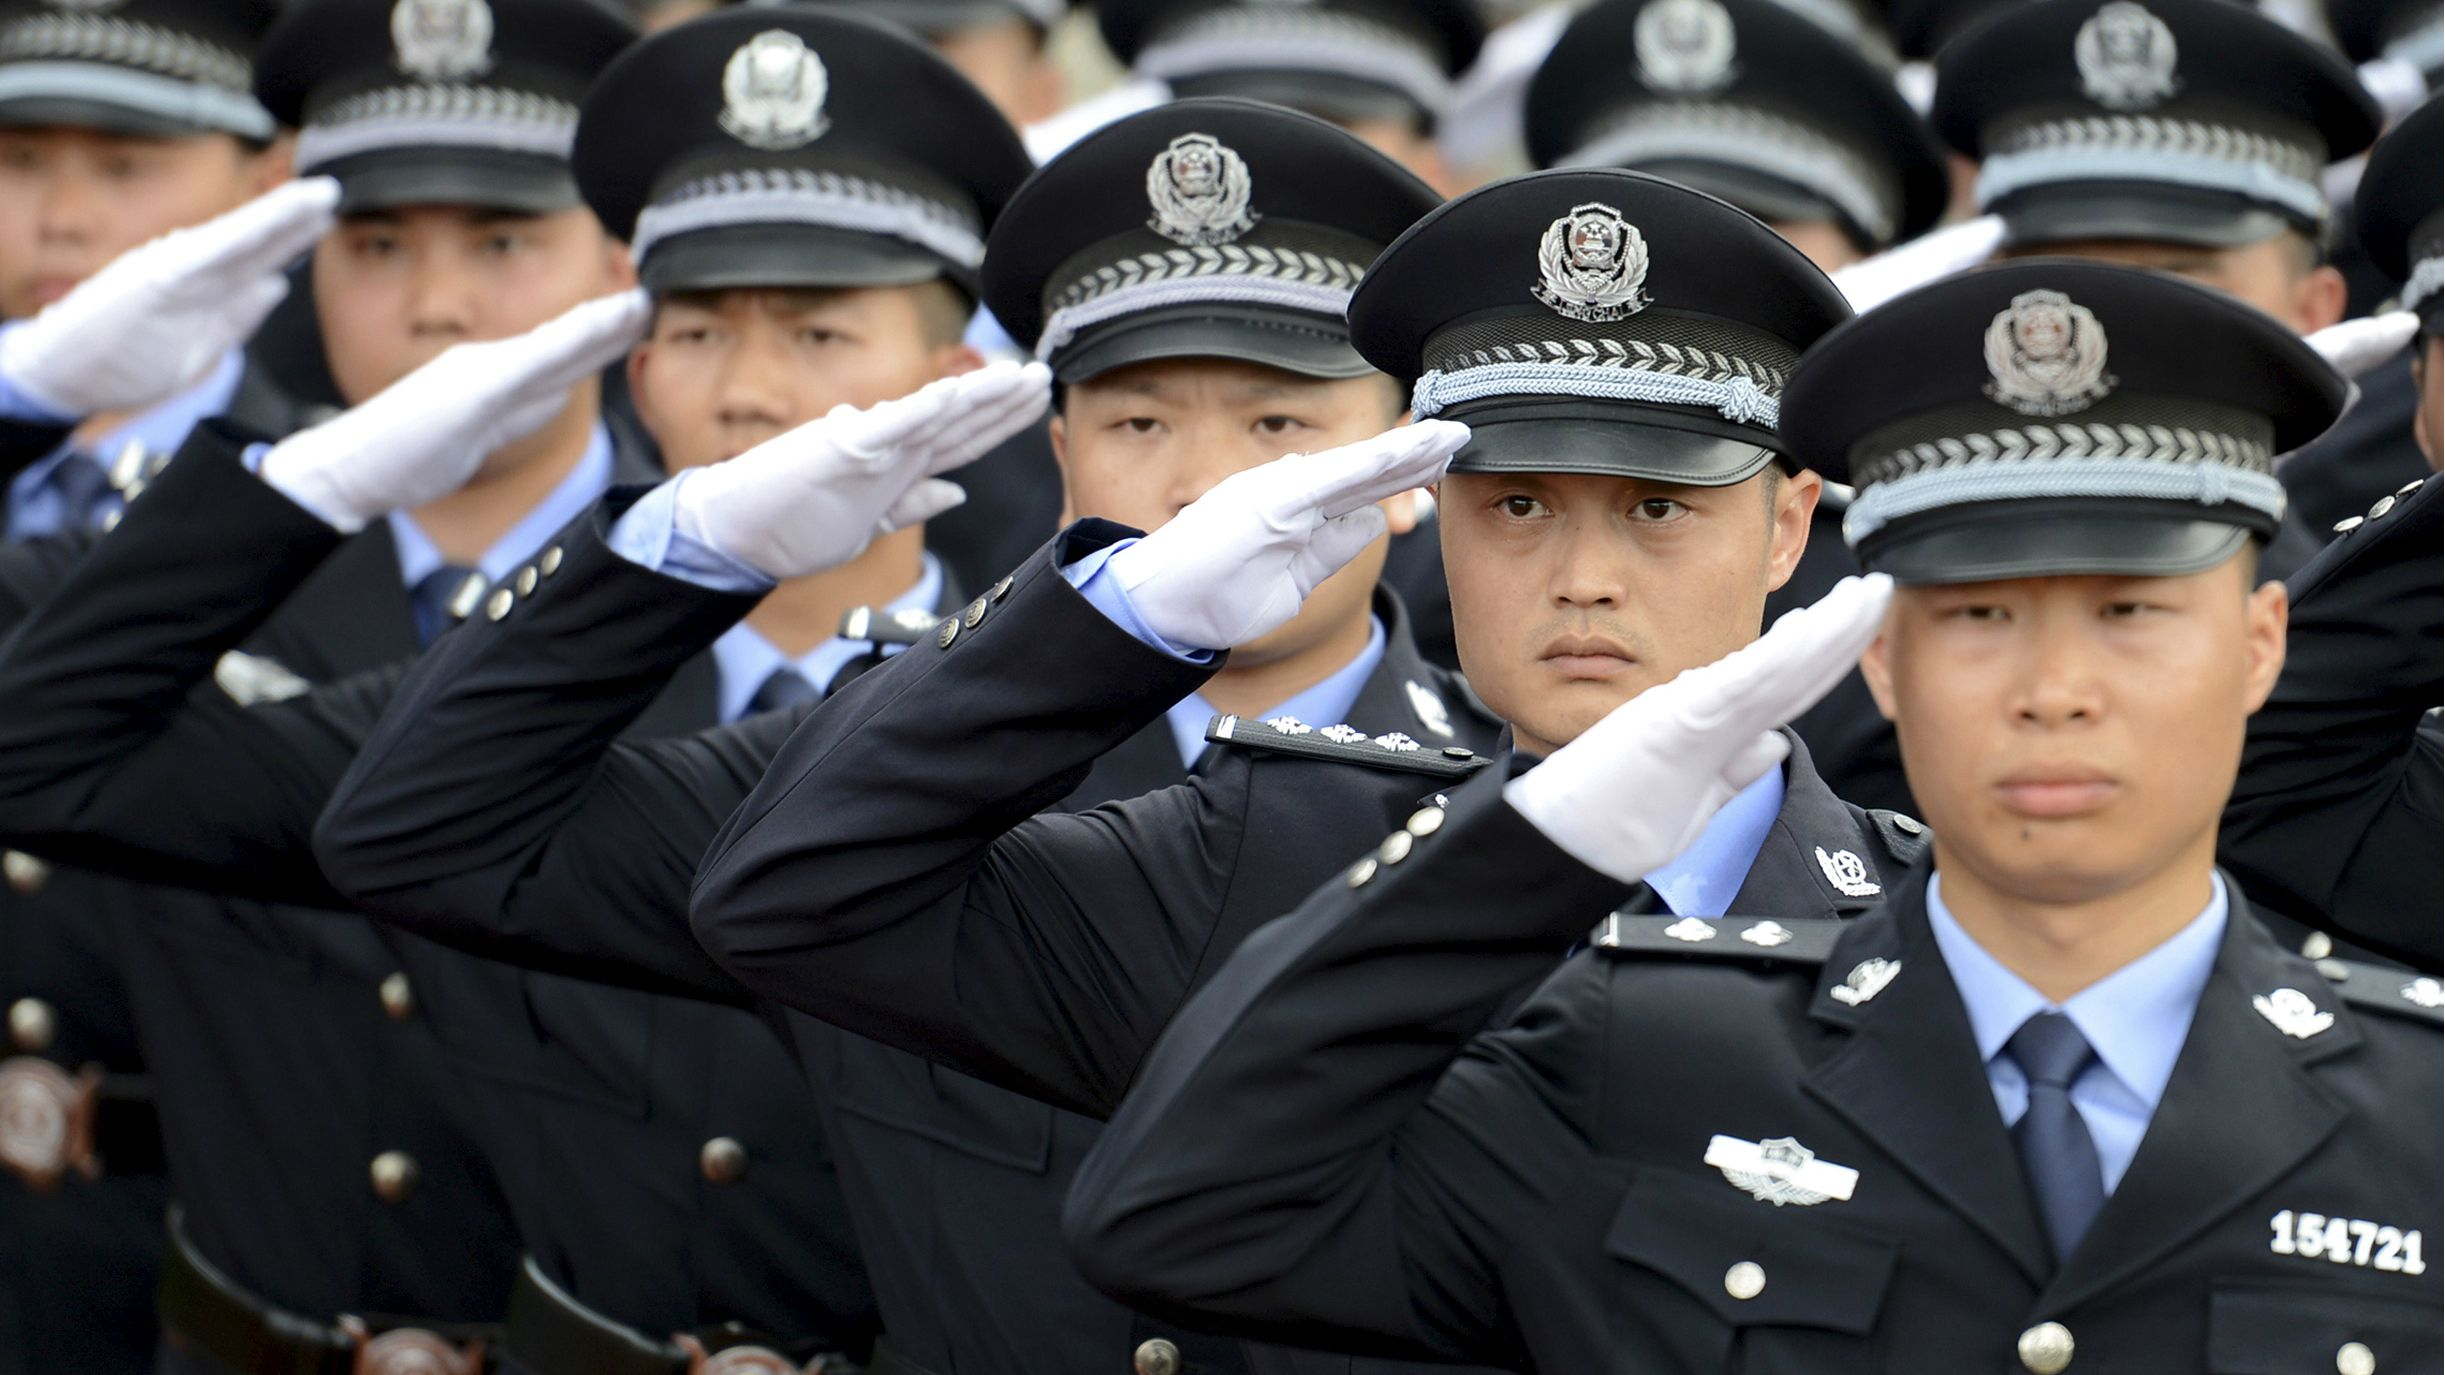 Policemen salute as they march in formation during the opening ceremony of a police sports assembly in Chenzhou, Hunan province, China, June 10, 2015. Picture taken June 10, 2015. REUTERS/Stringer